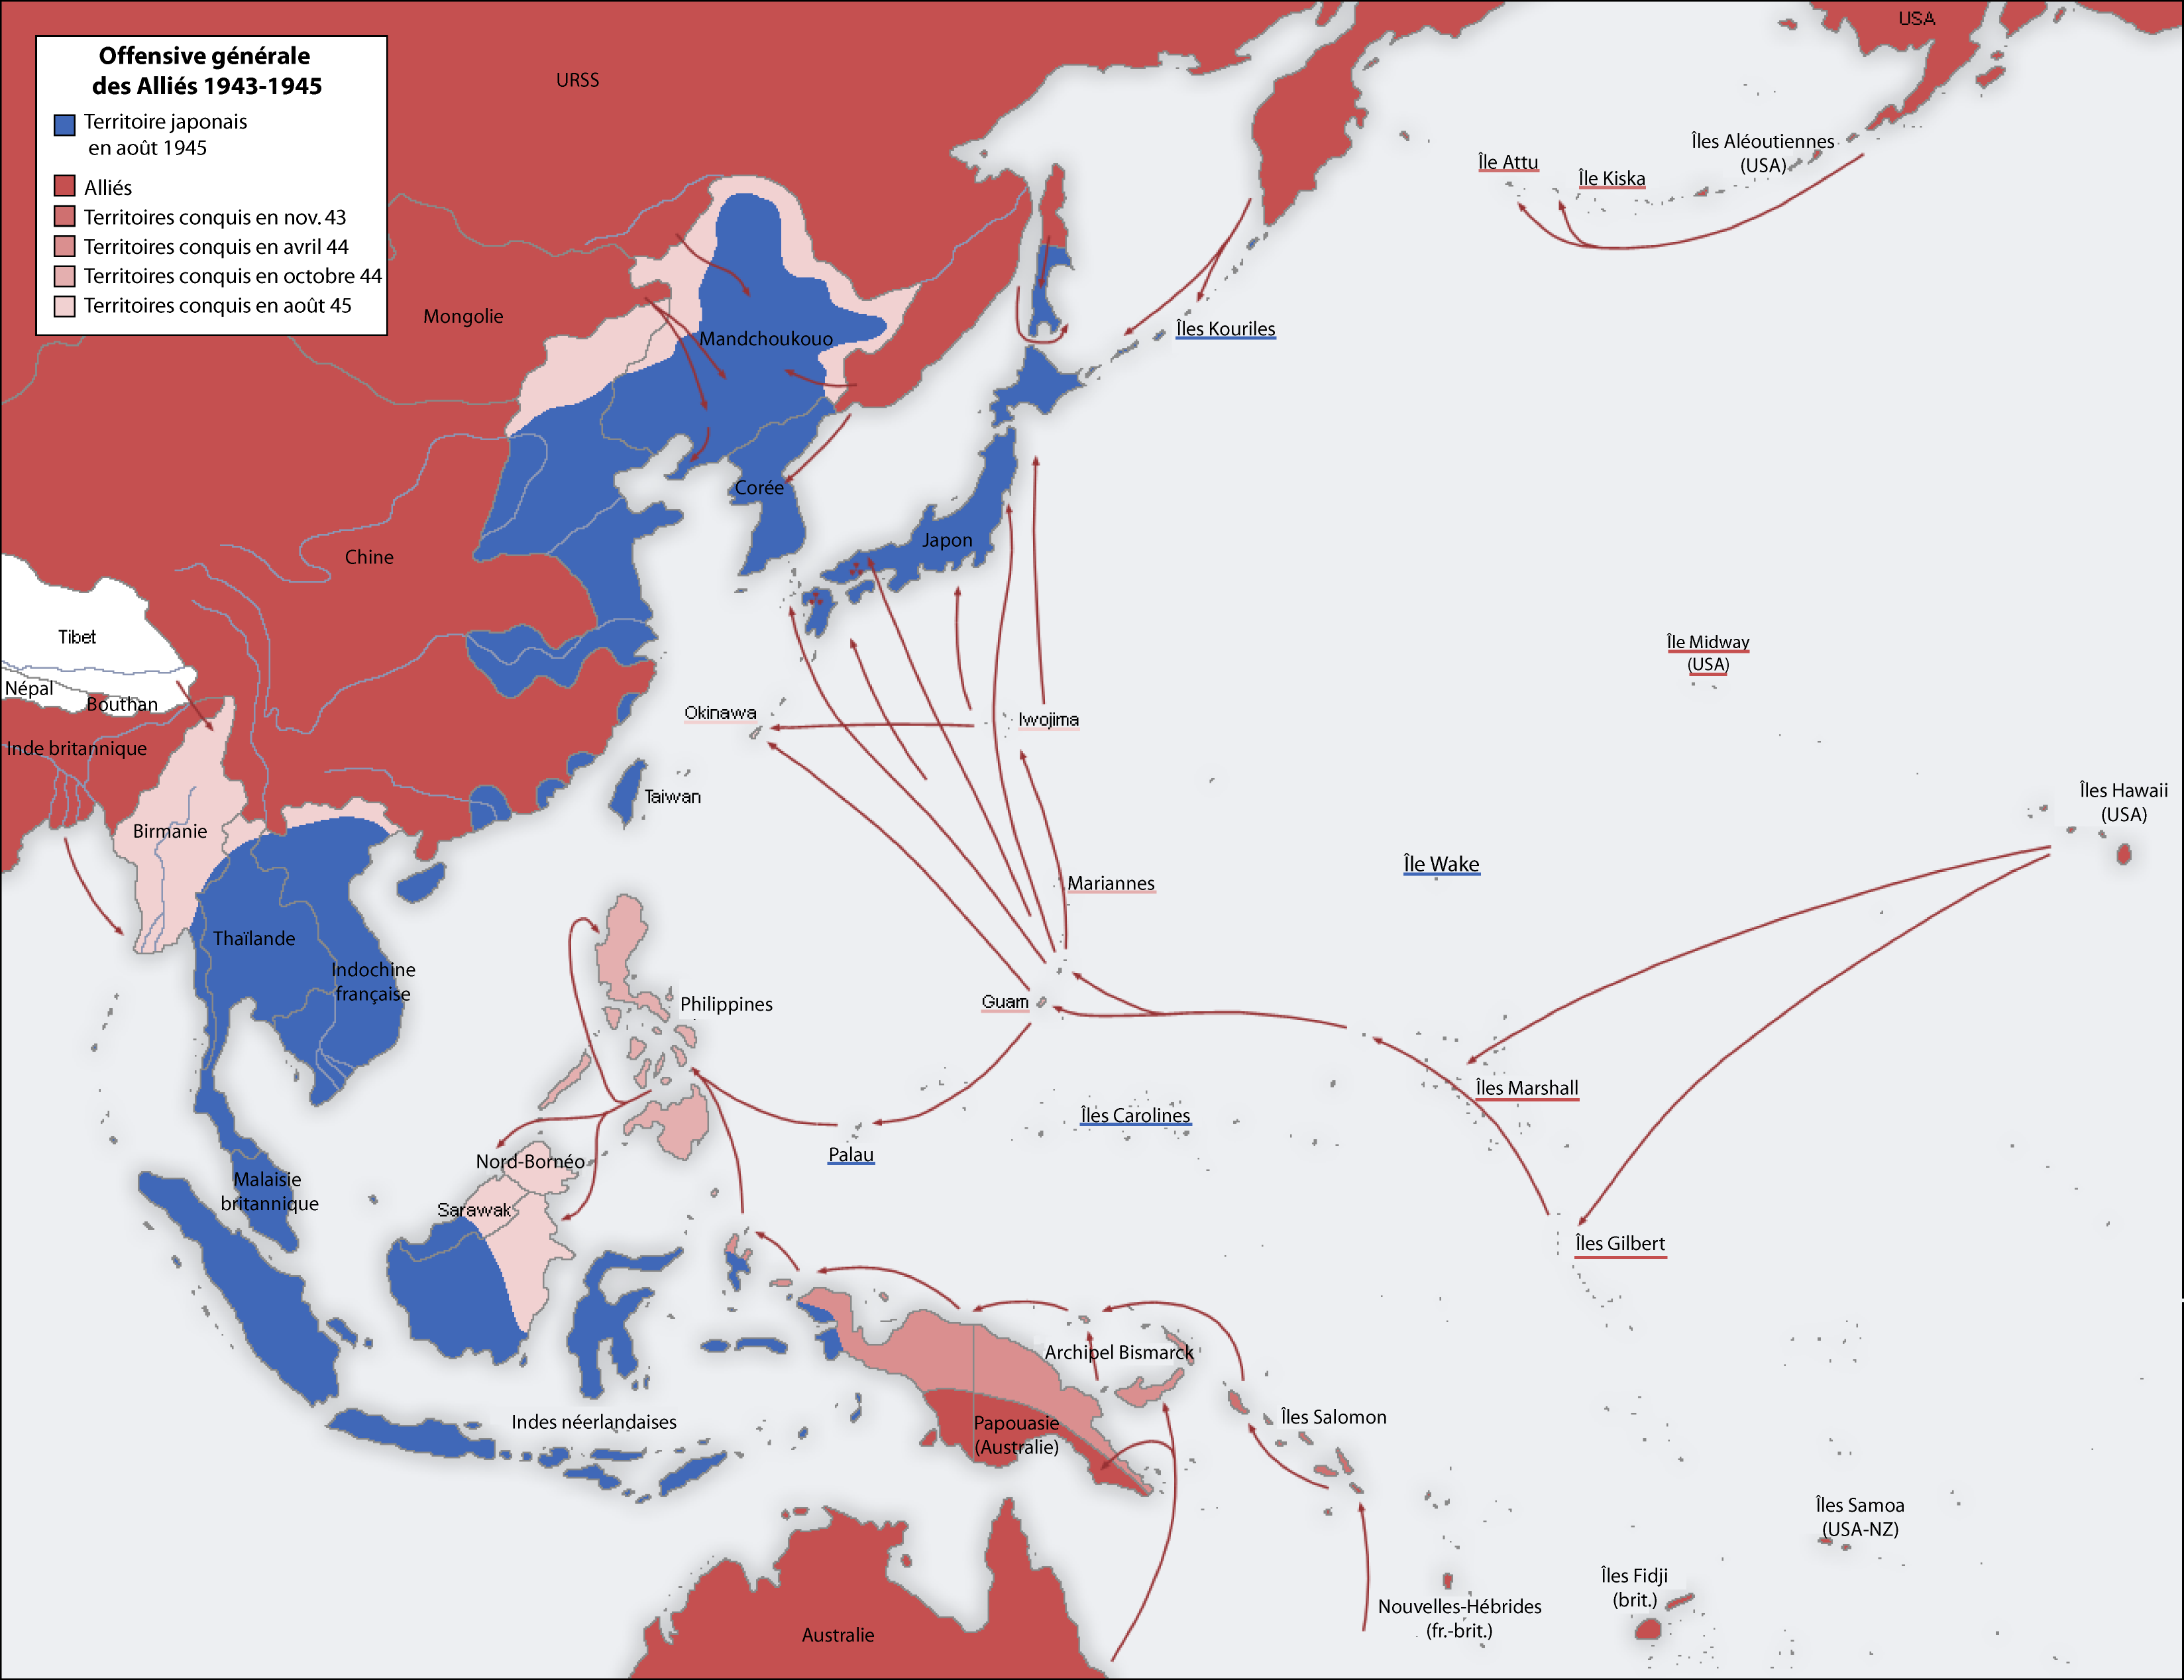 File Second world war asia 1943 1945 map fr Wikimedia Commons